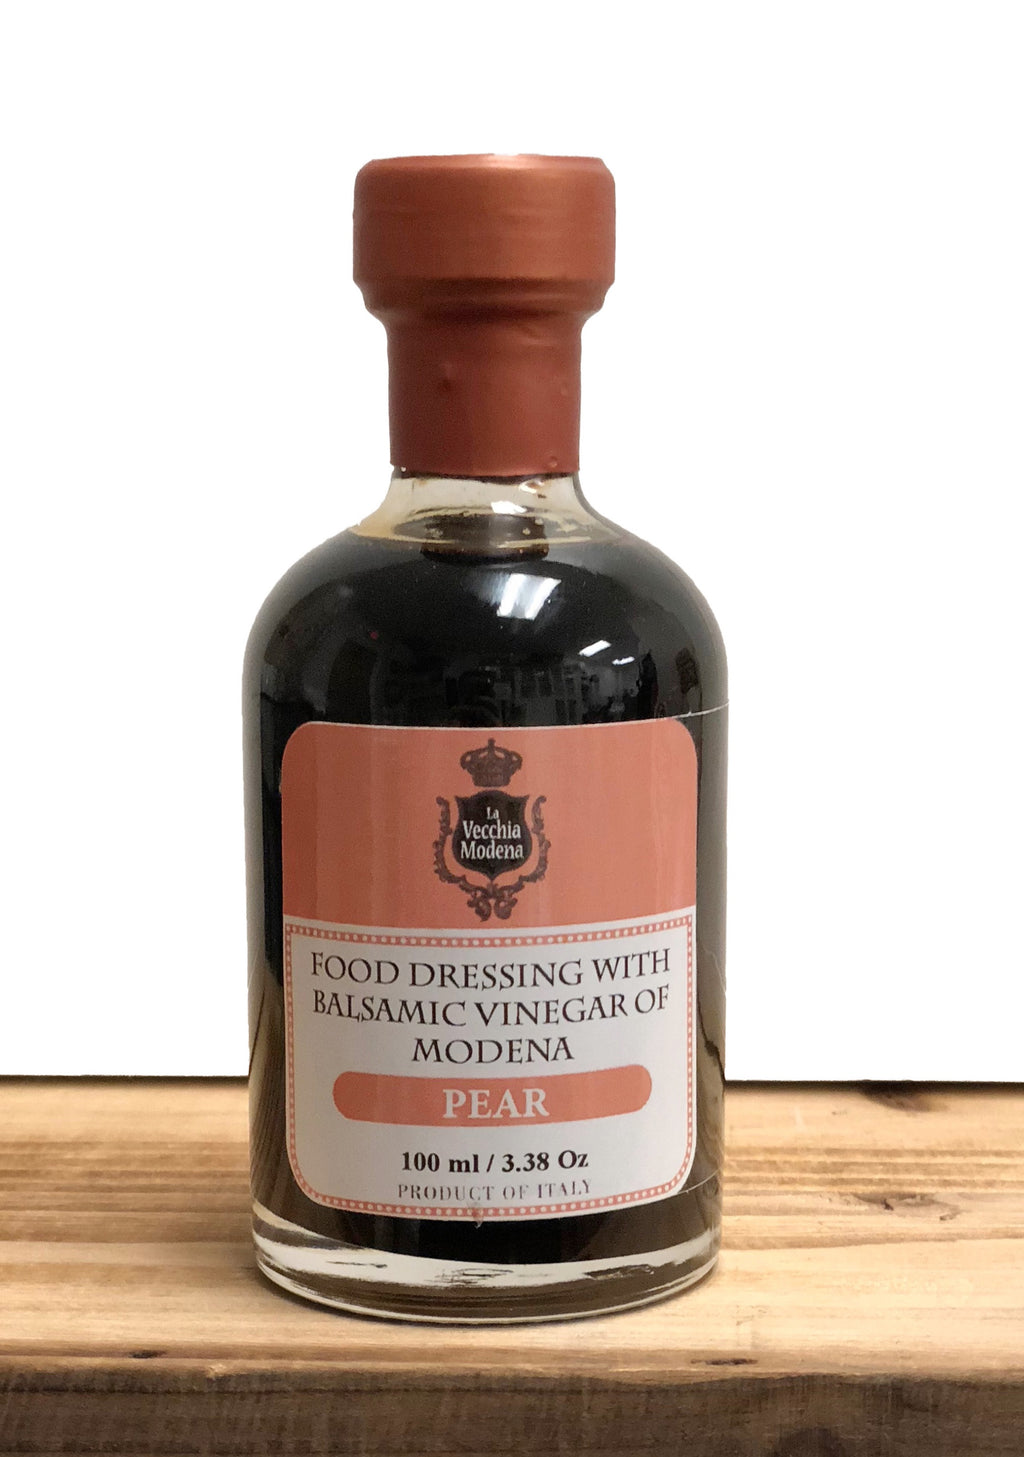 Balsamic Vinegar Of Modena with Pear